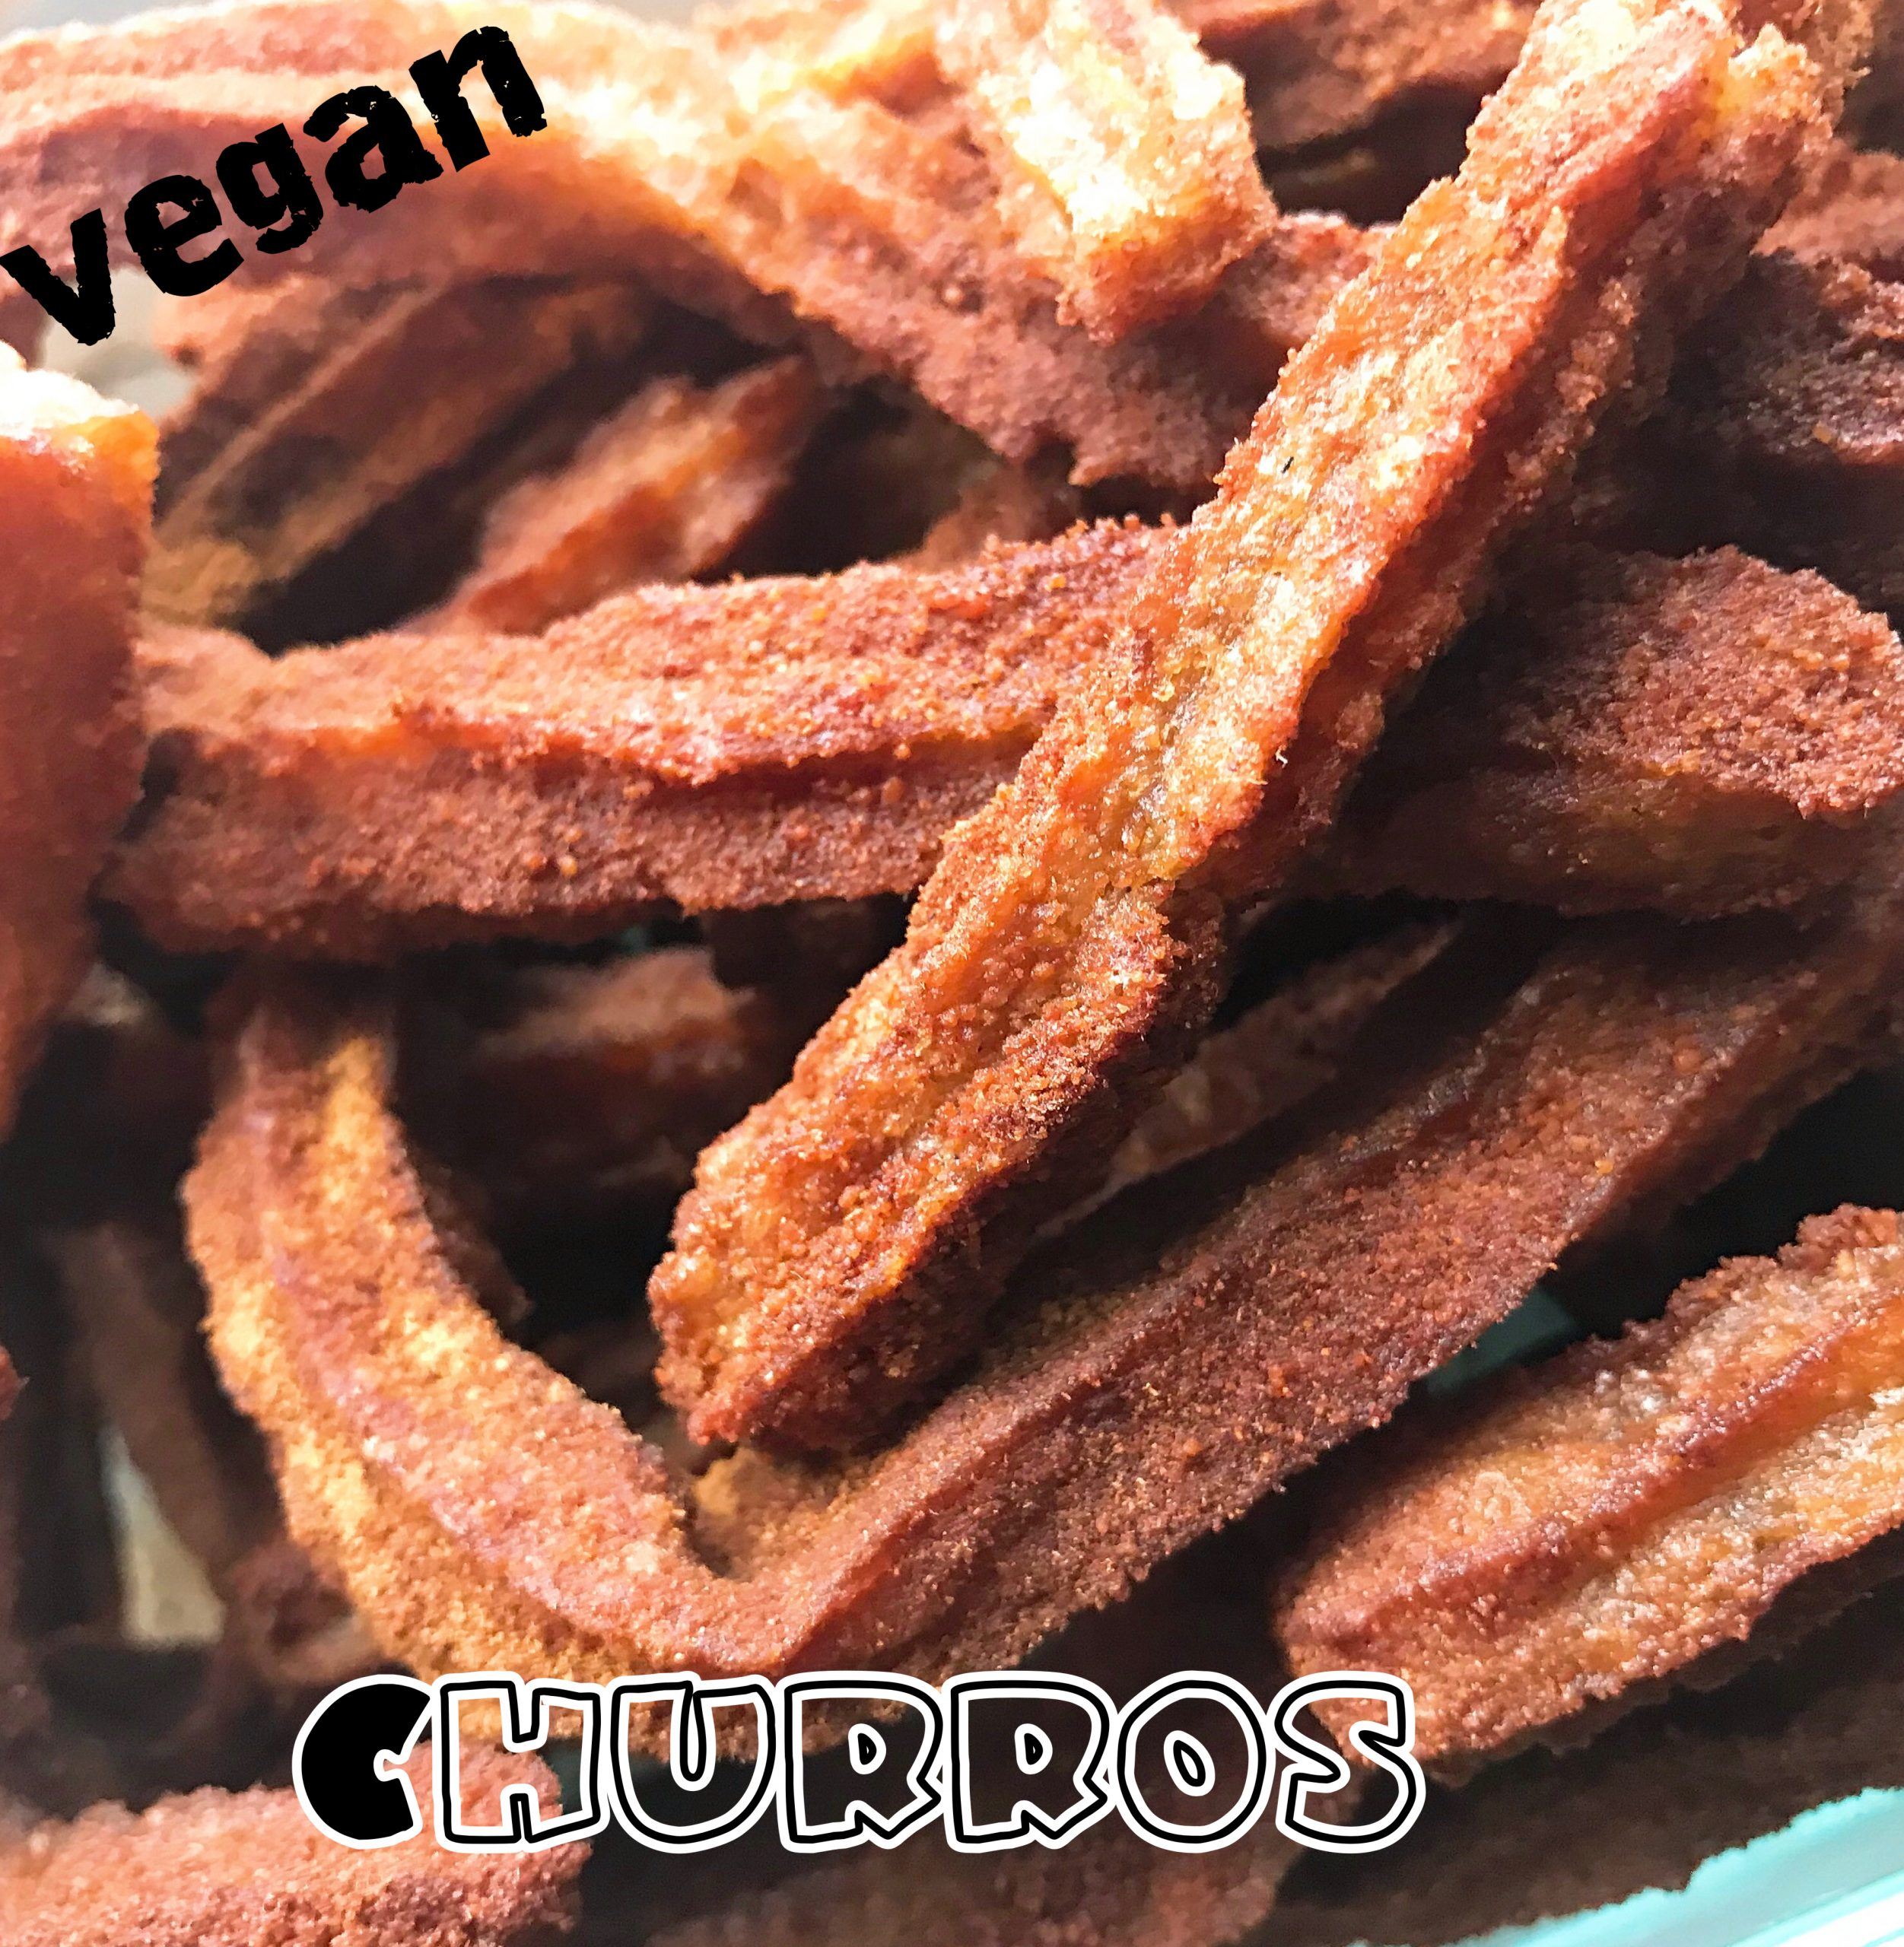 Protected: Vegan Churros